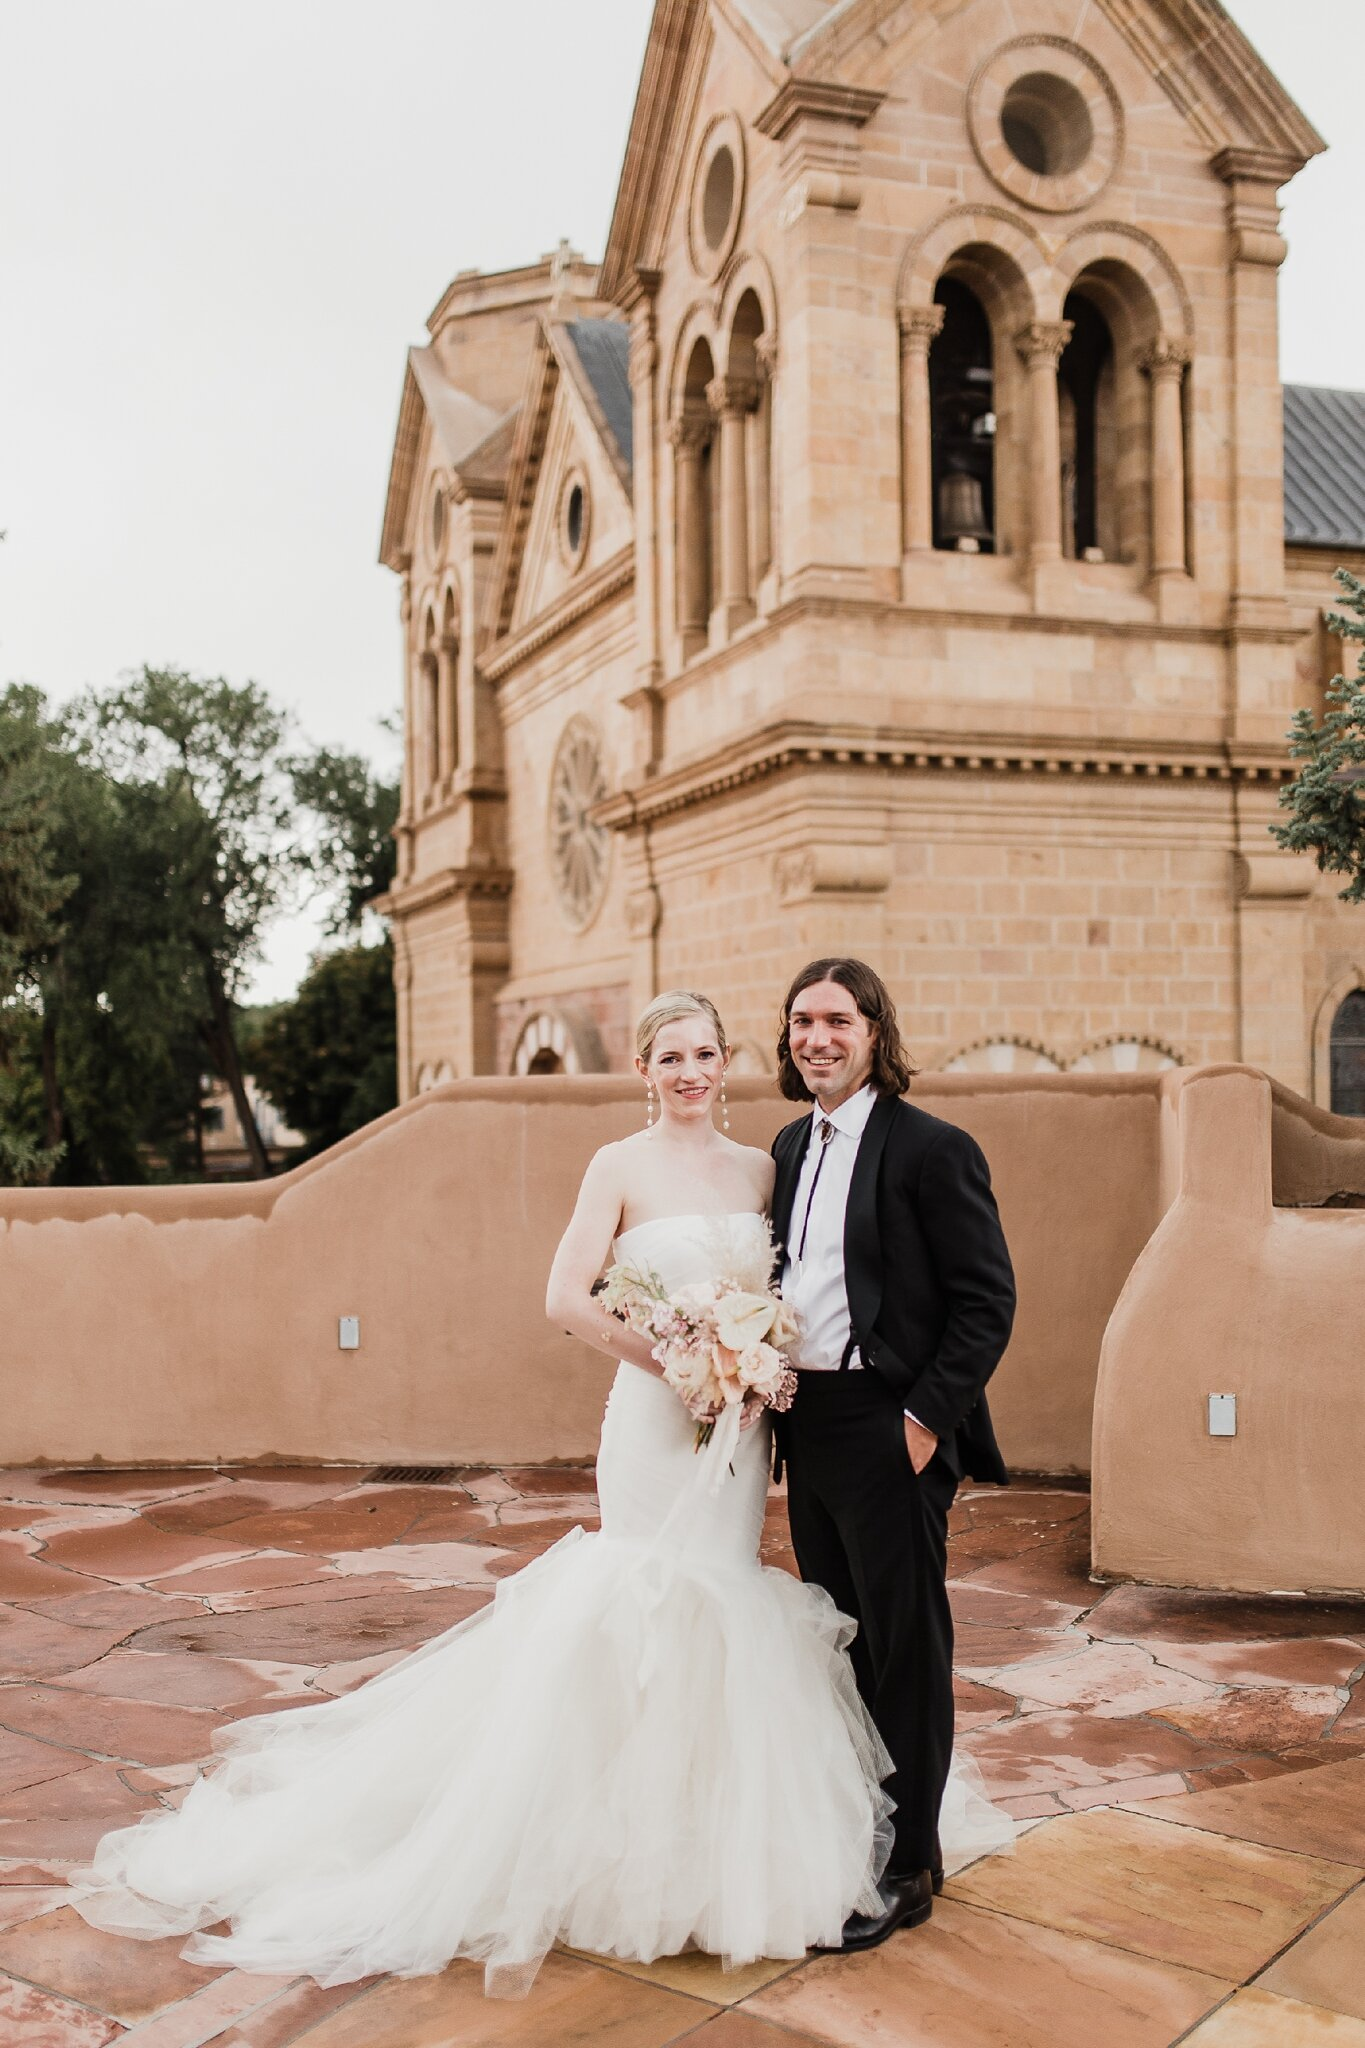 Alicia+lucia+photography+-+albuquerque+wedding+photographer+-+santa+fe+wedding+photography+-+new+mexico+wedding+photographer+-+new+mexico+wedding+-+la+fonda+wedding+-+la+fonda+on+the+plaza+-+santa+fe+wedding+-+brooklyn+bride_0064.jpg